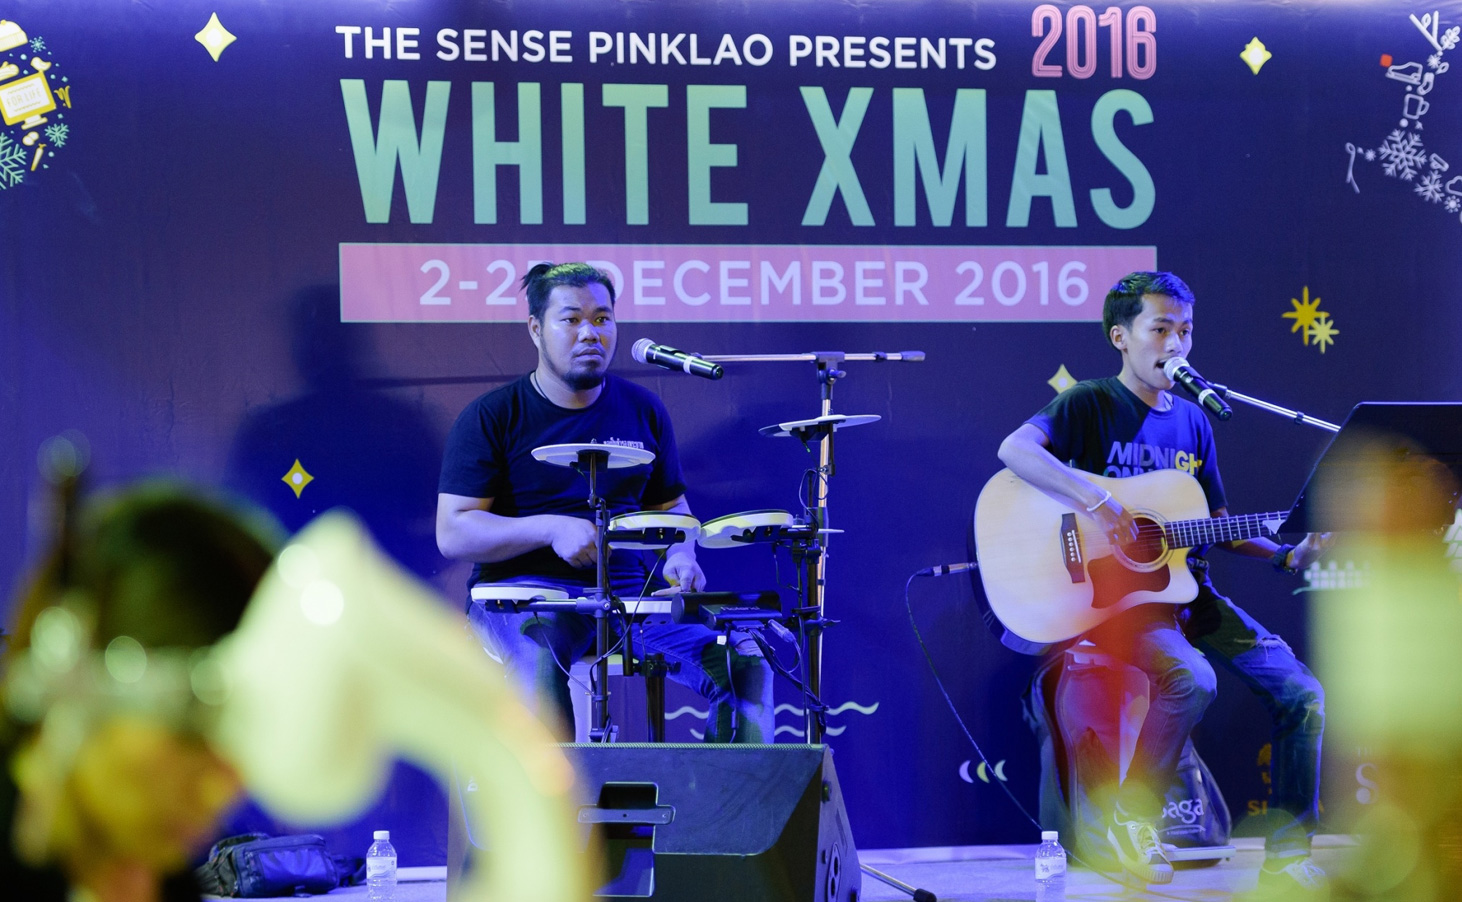 TheSense WHITE XMAS 2016 2-25 ธ.ค. 2559